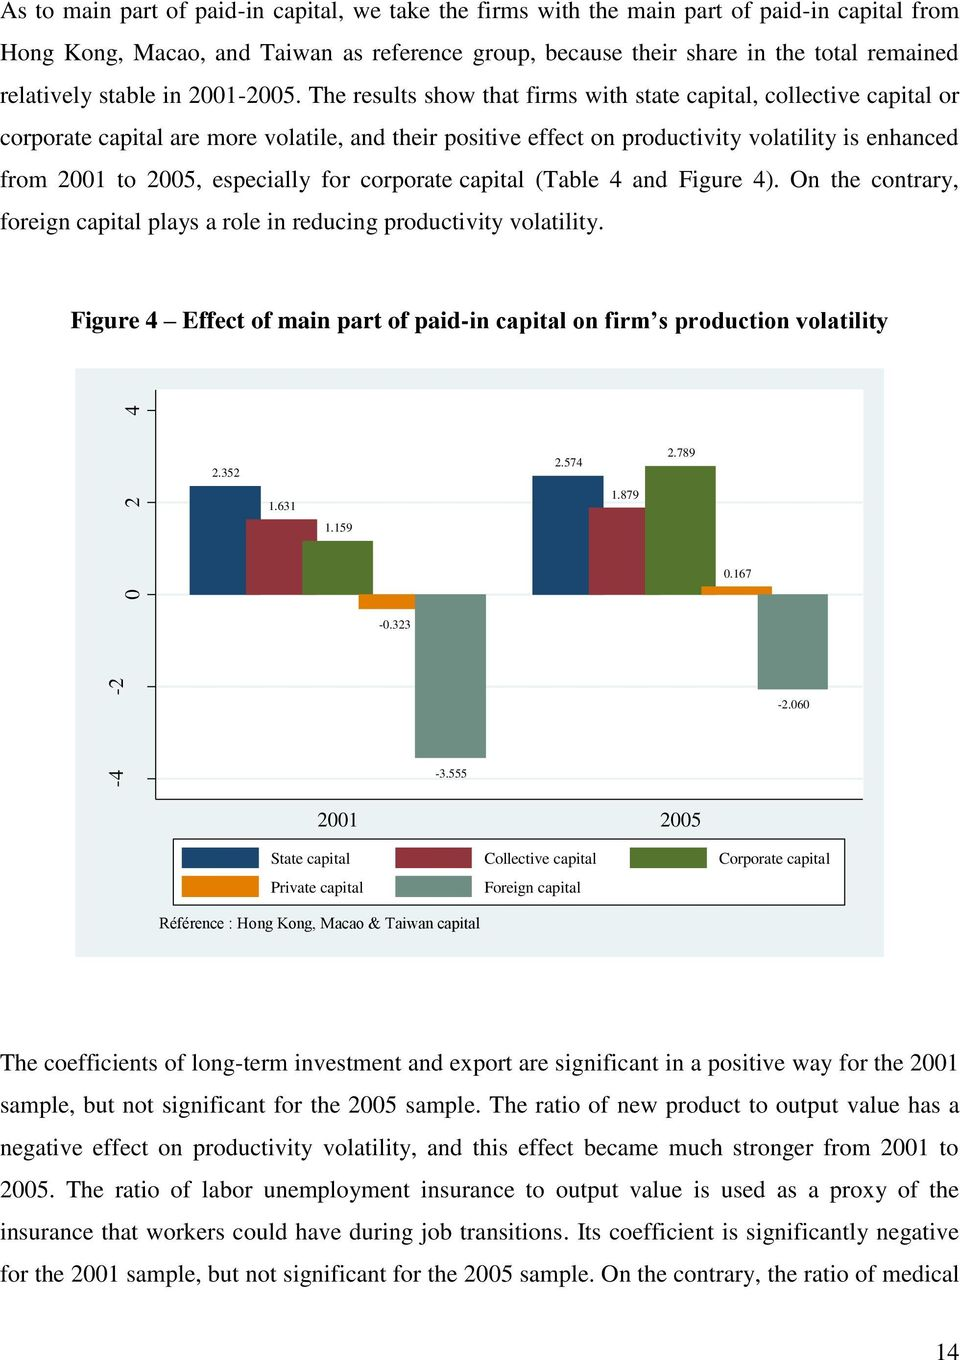 The results show that firms with state capital, collective capital or corporate capital are more volatile, and their positive effect on productivity volatility is enhanced from 2001 to 2005,